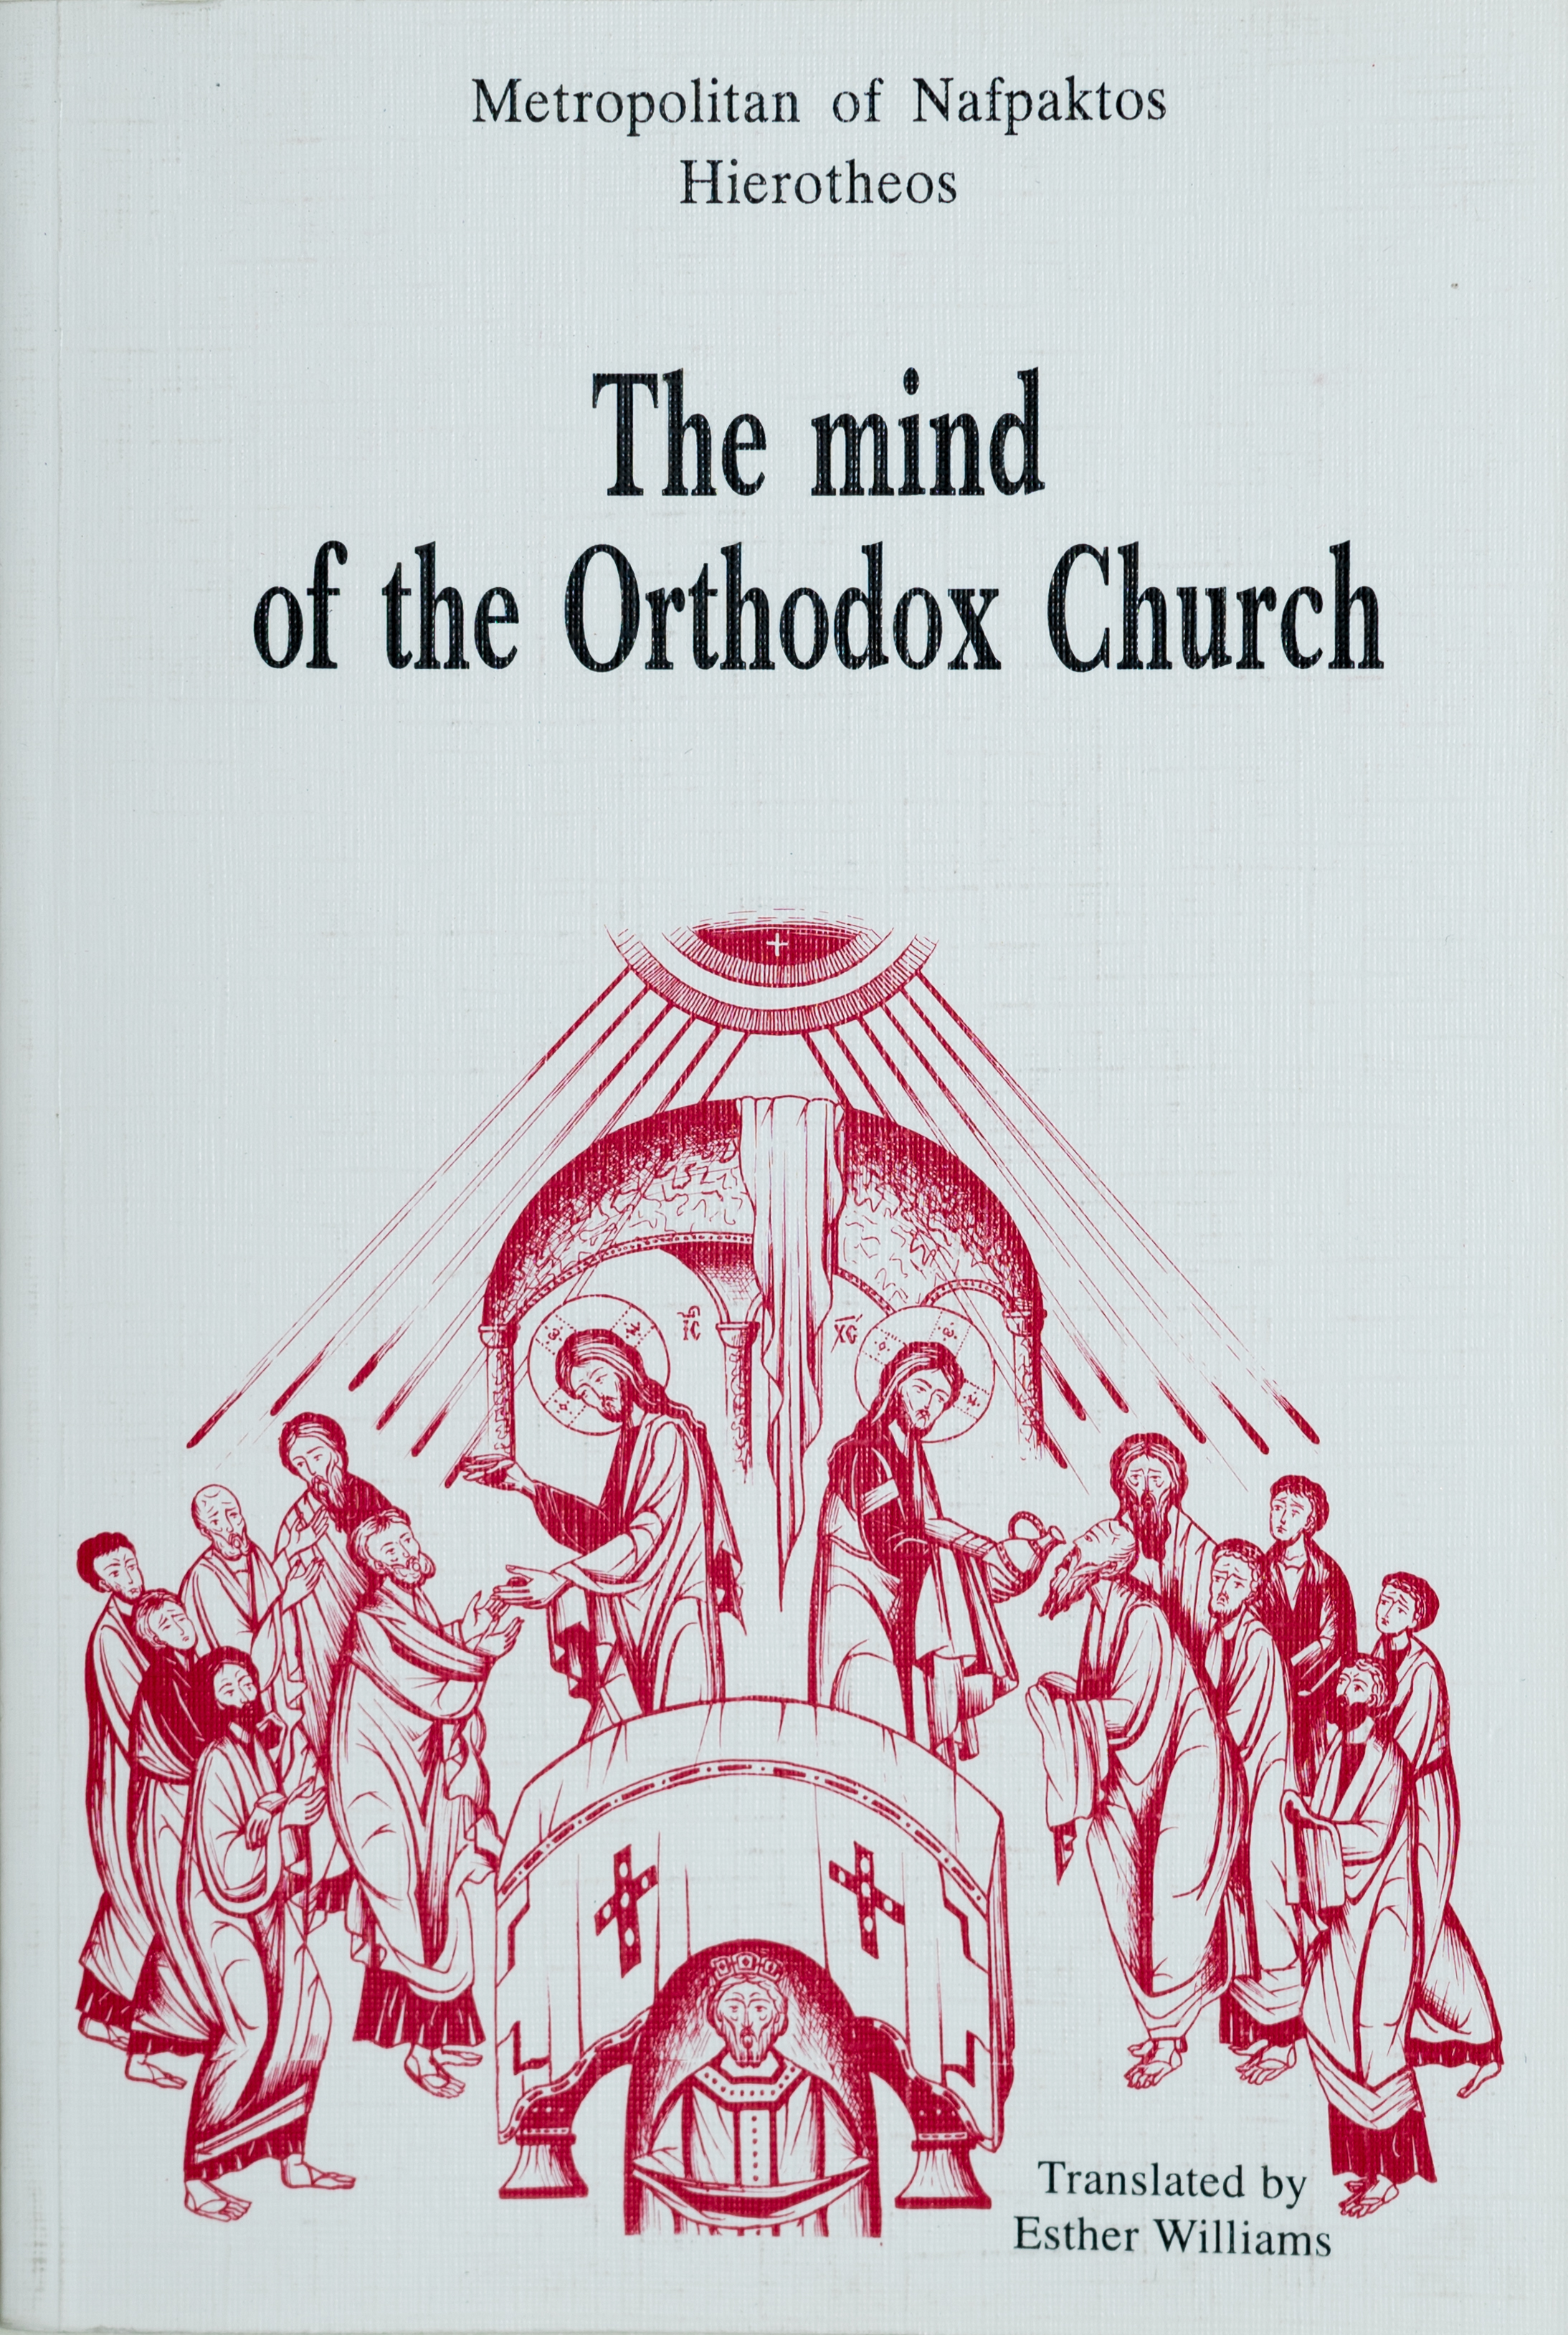 The mind of the Orthodox Church